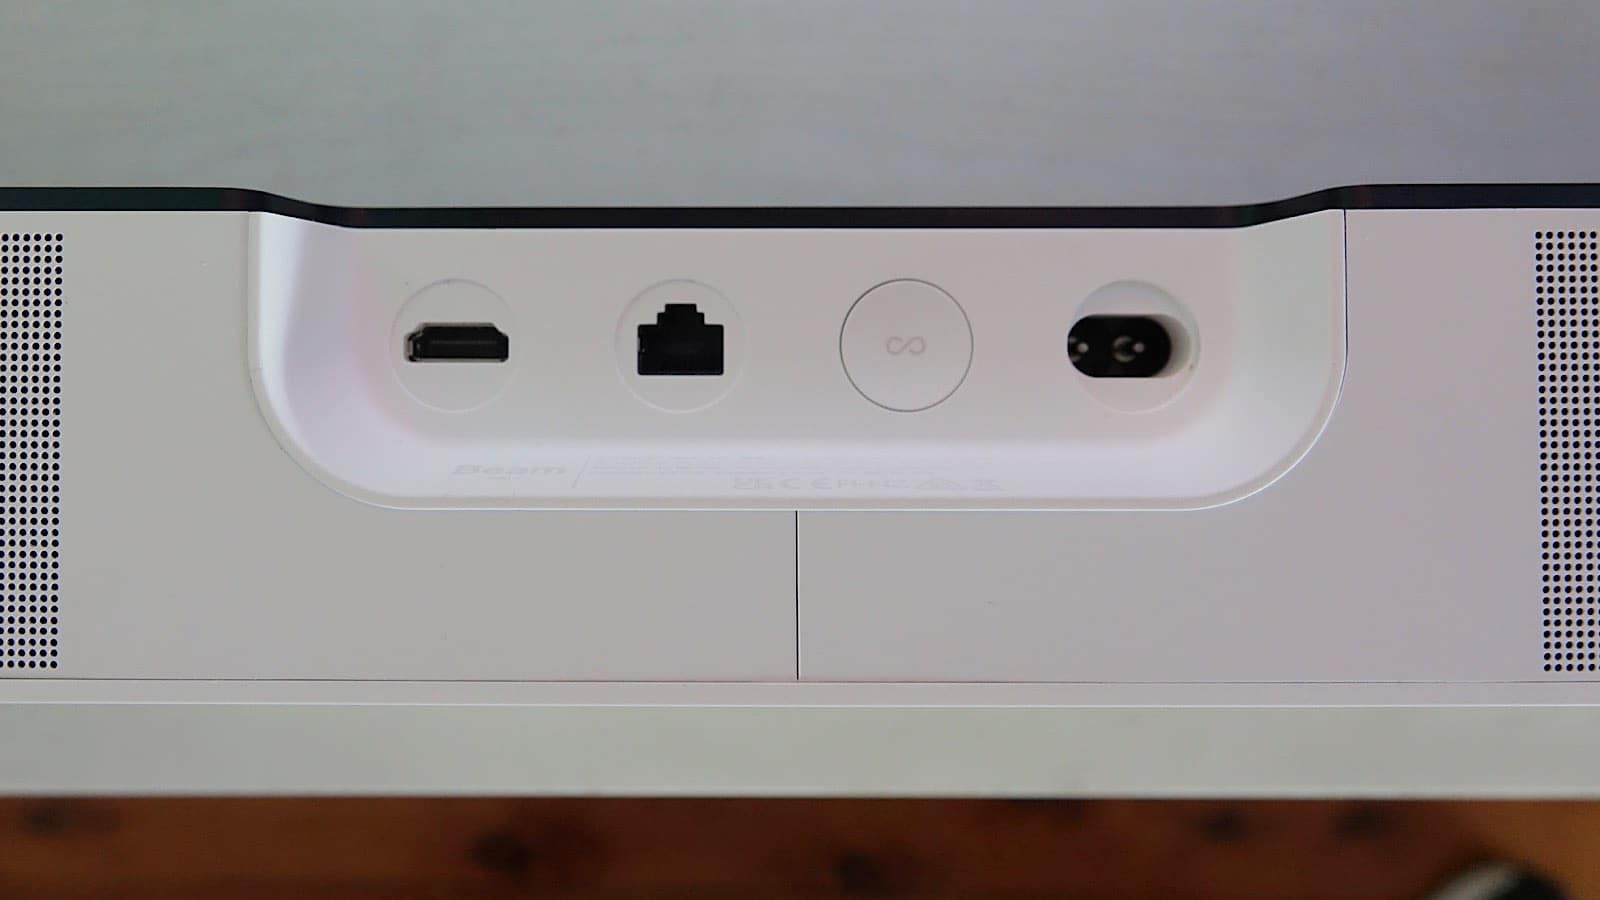 The rear ports on the Sonos Beam Gen 2 include HDMI, Ethernet, and a figure-eight power connector, plus a sync button.